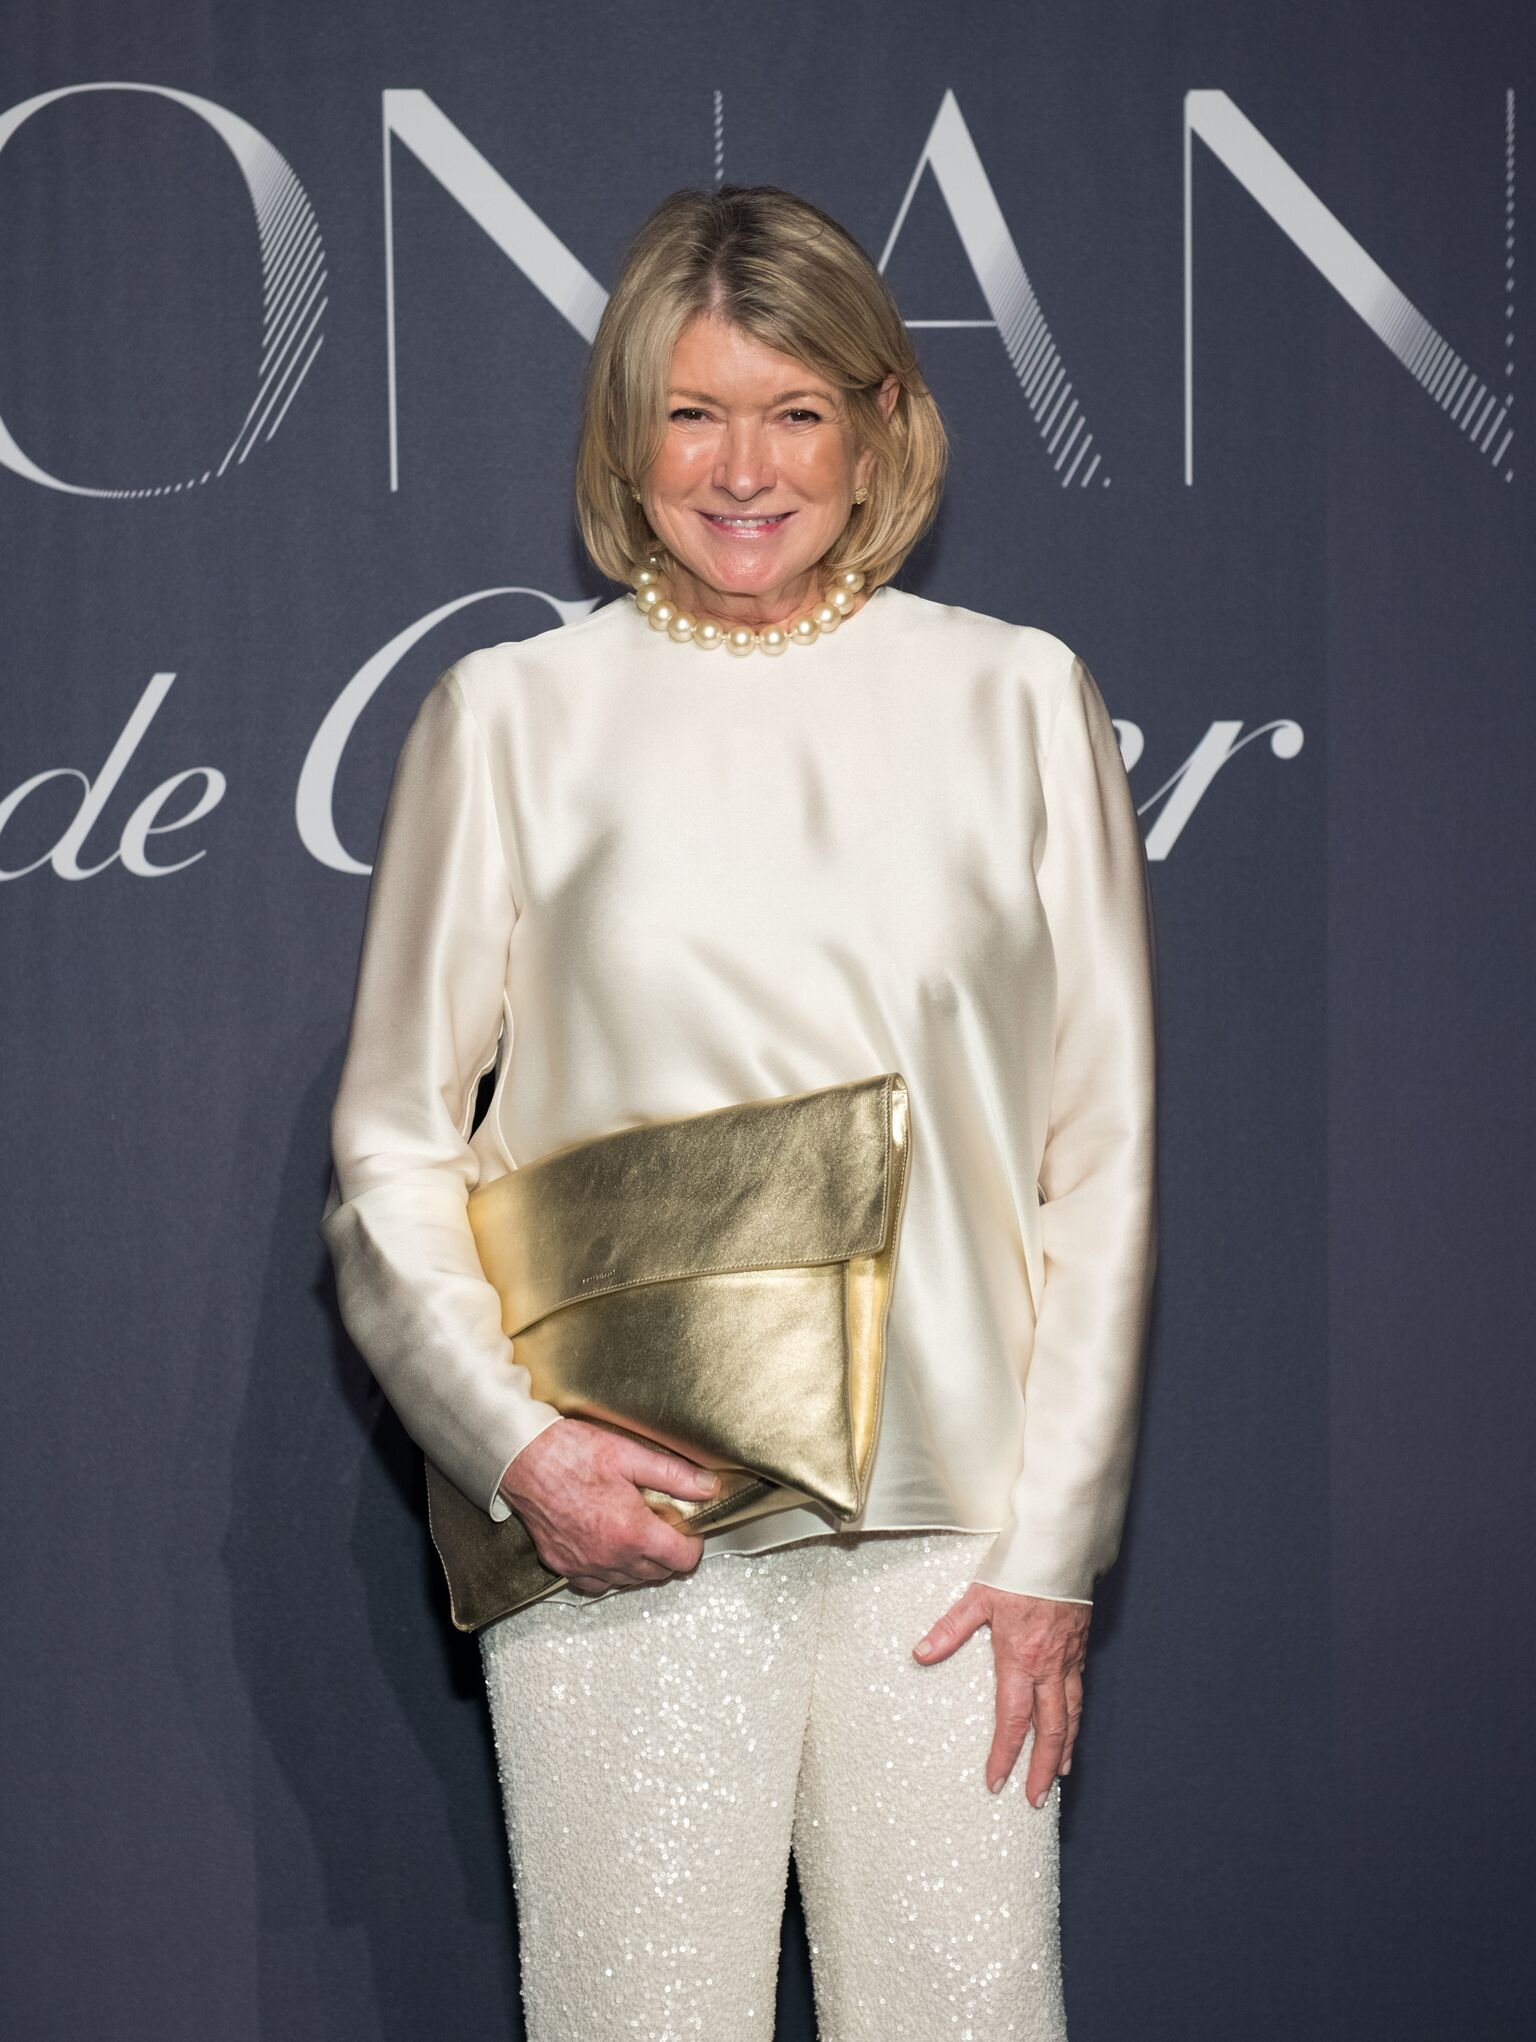 Martha Stewart attends Cartier's celebration of Resonances de Cartier on October 10, 2017 in New York City. | Getty Images